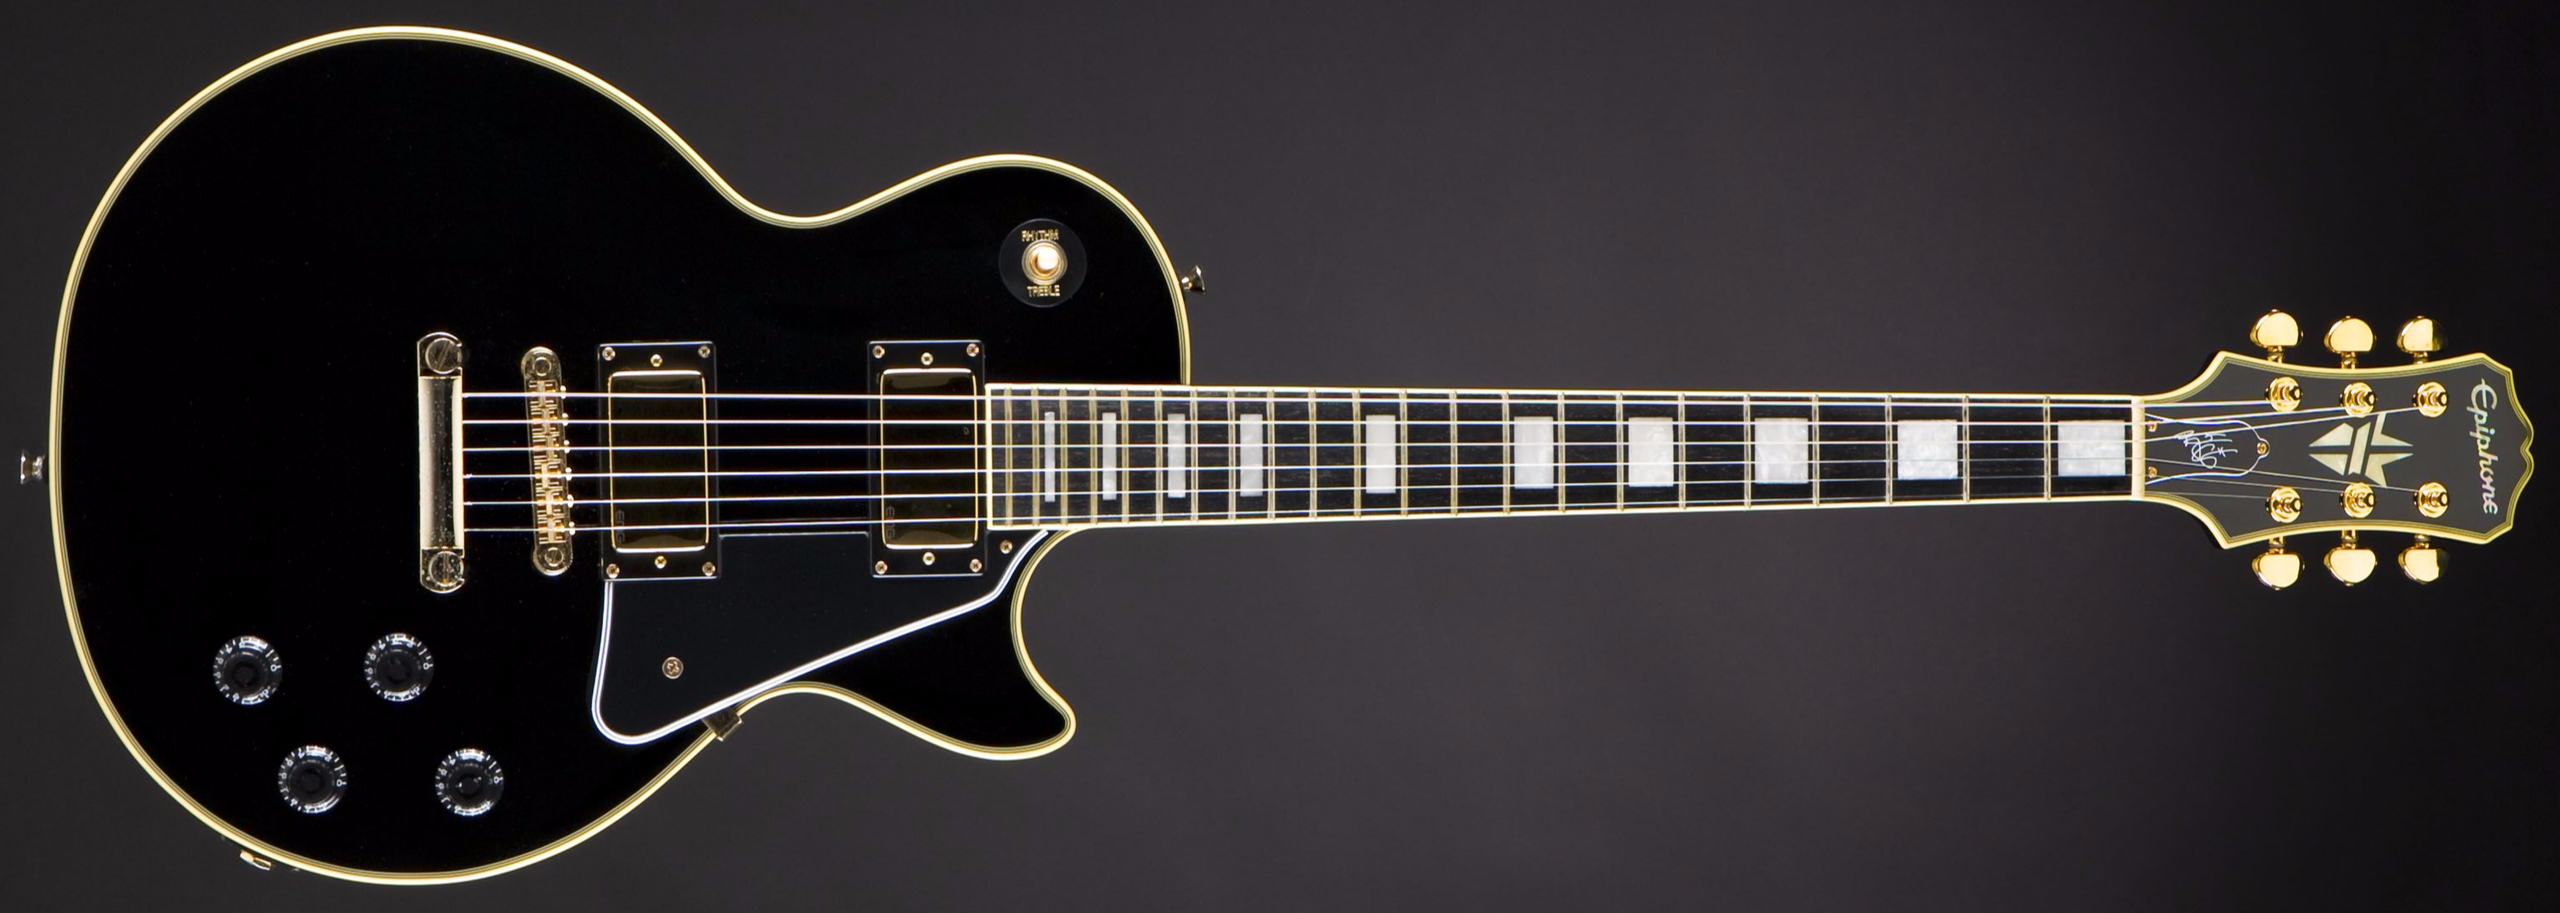 EPIPHONE Limited Edition Björn Gelotte Les Paul Custom